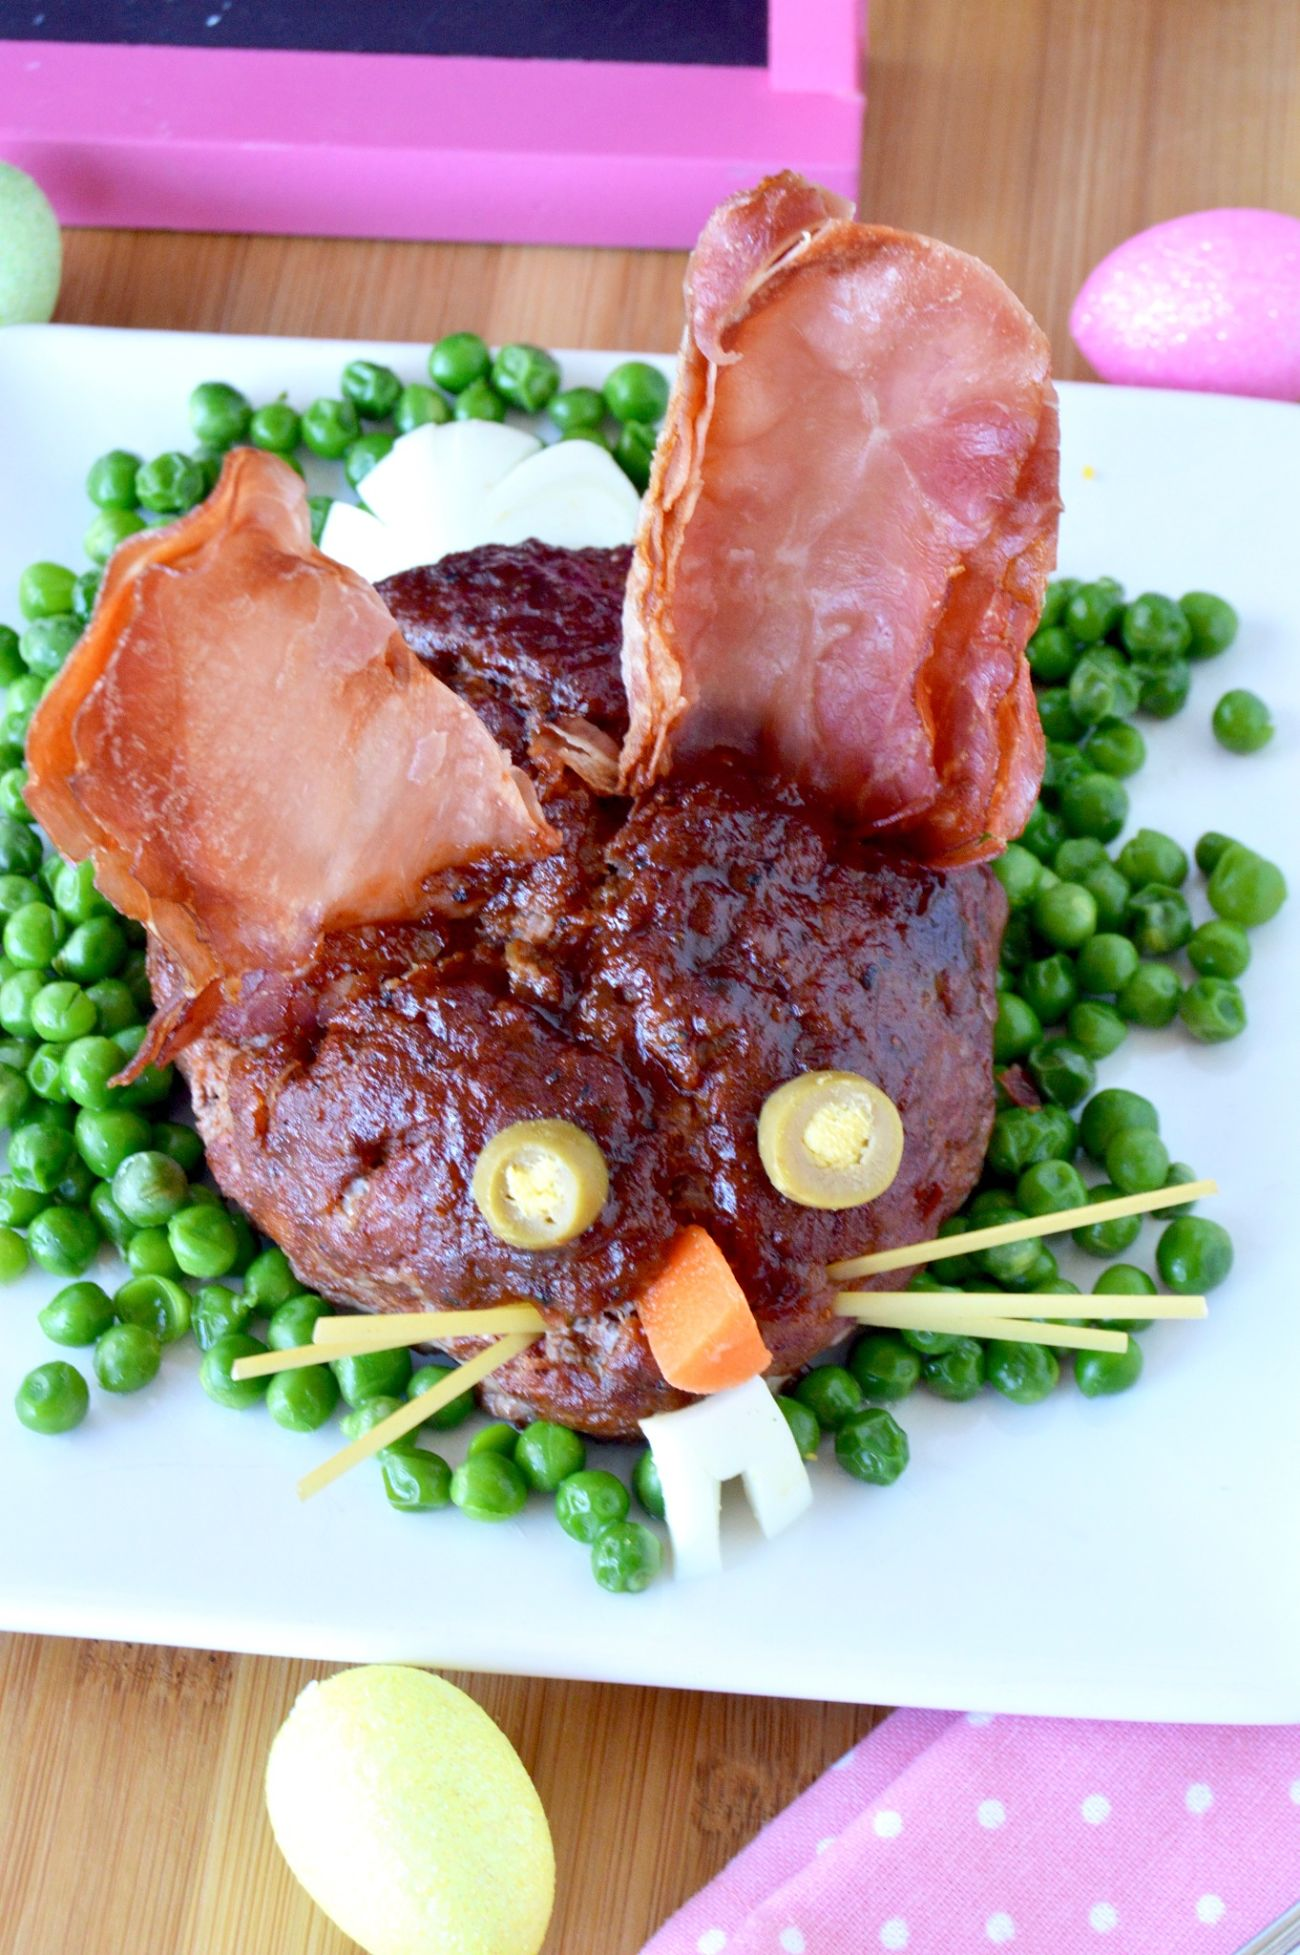 meatloaf in the shape of a bunny on a white plate